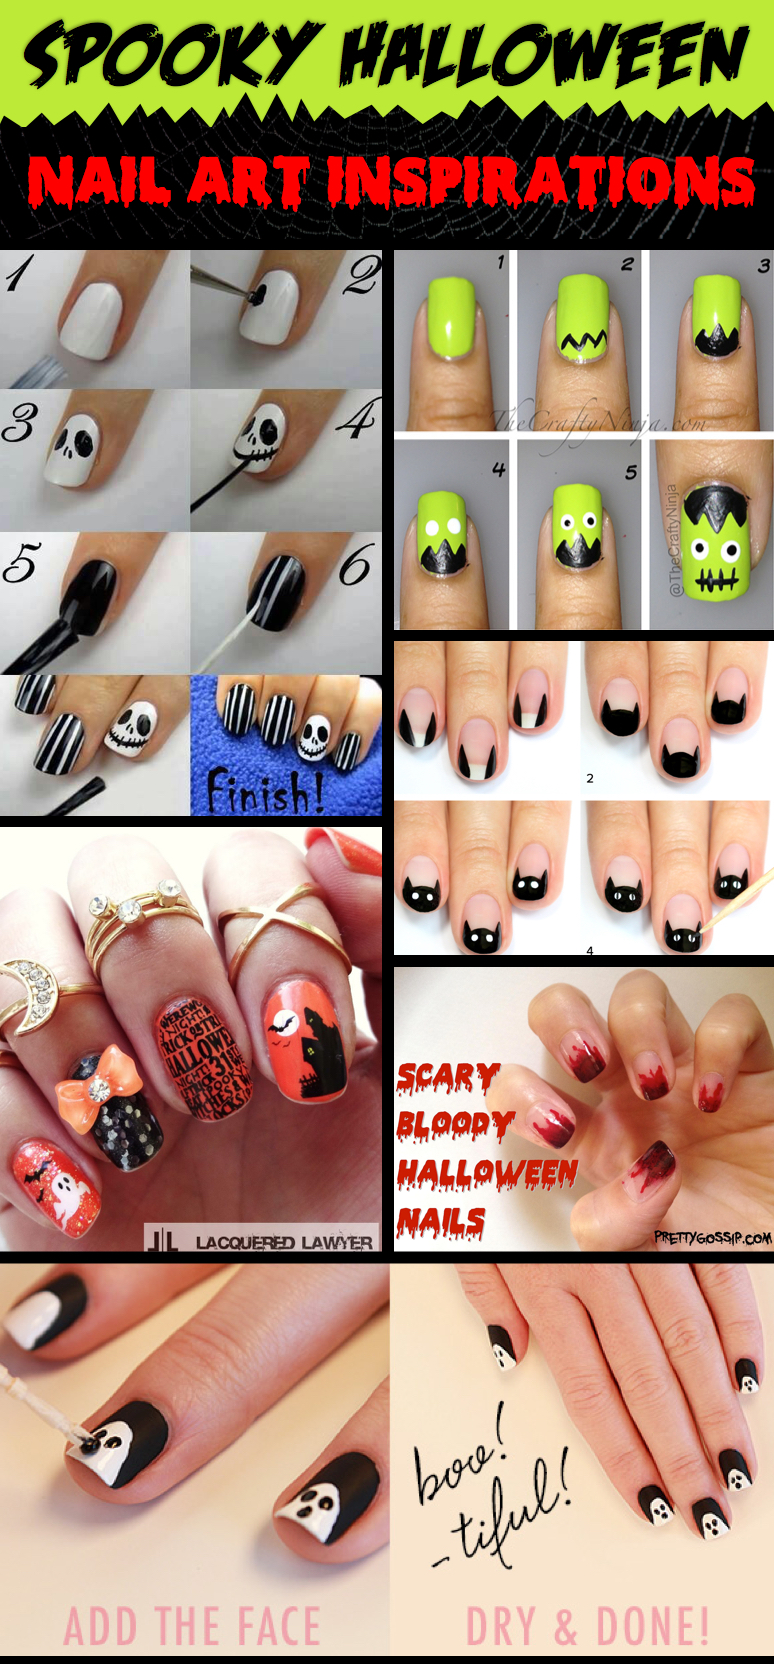 40 best halloween nail art inspirations for 2017 30 gorgeous and spooky halloween nail art inspirations that will blow your mind prinsesfo Choice Image